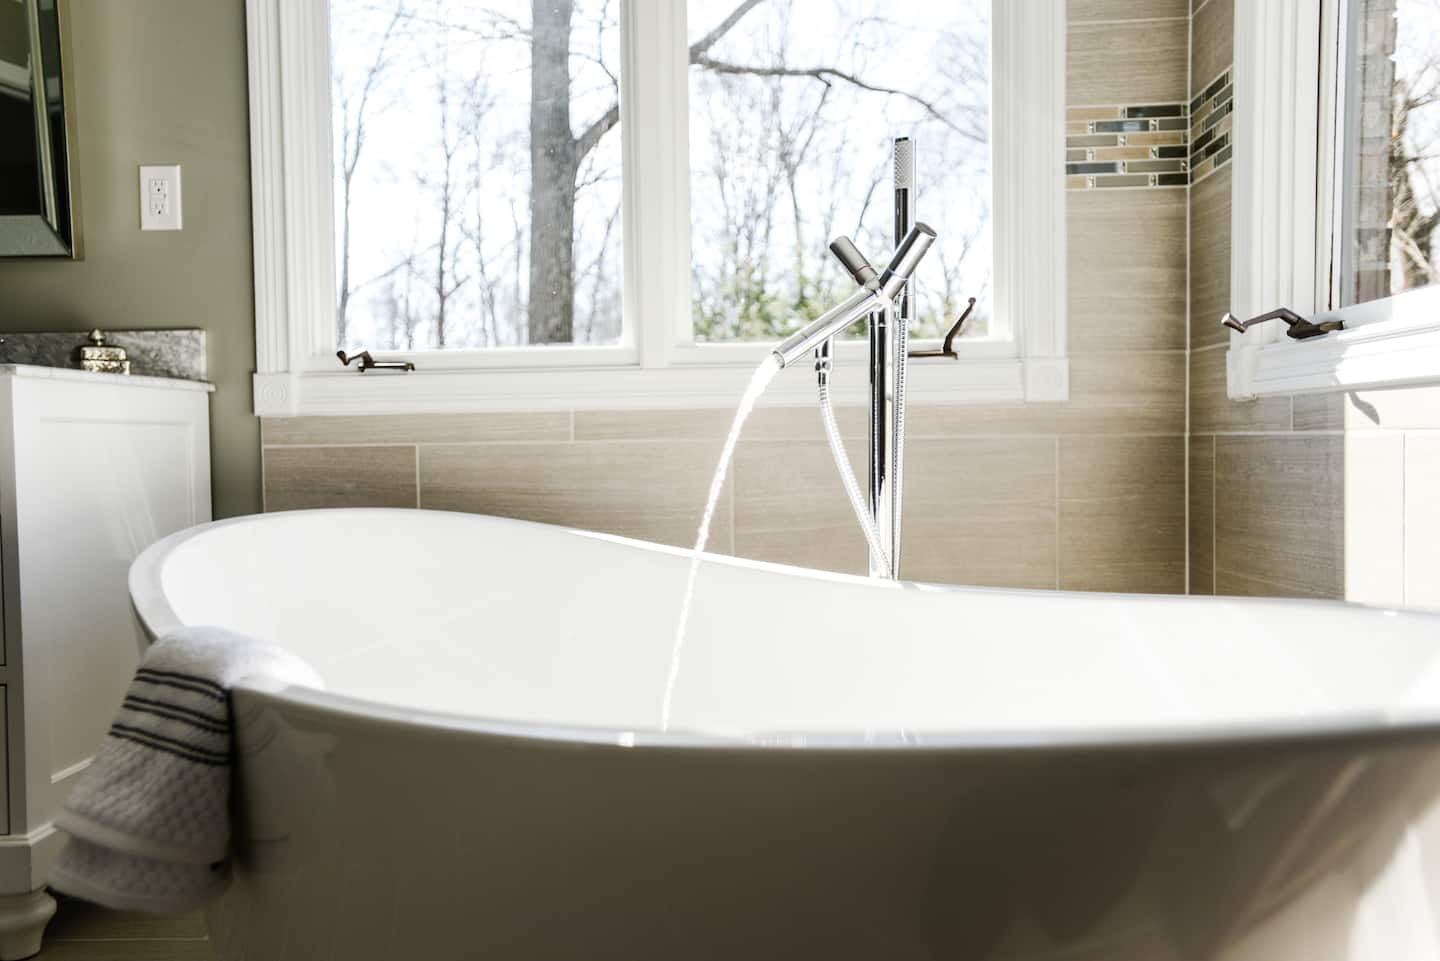 How Much Does Bathtub Replacement Cost? | Angie\'s List